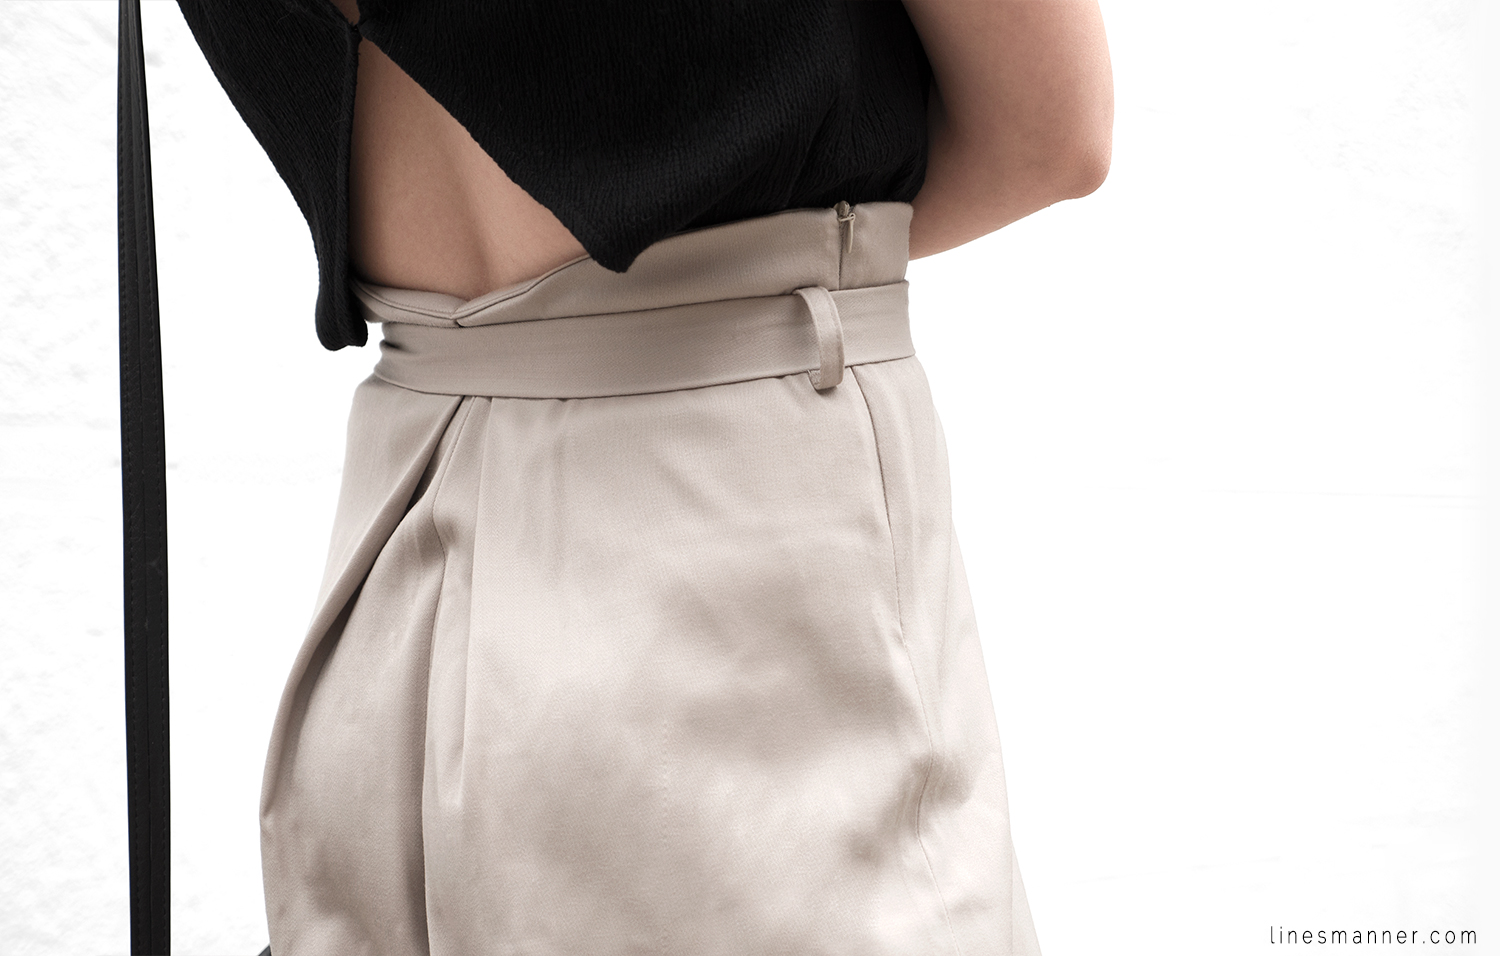 Lines-Manner-Neutrals-Quality-Lora_Gene-Wide_Leg_Pant-Modern-Sophistication-Tailored-Essentials-Details-Simplicity-Summer_vibes-Volume-Proportion-Flowy-14